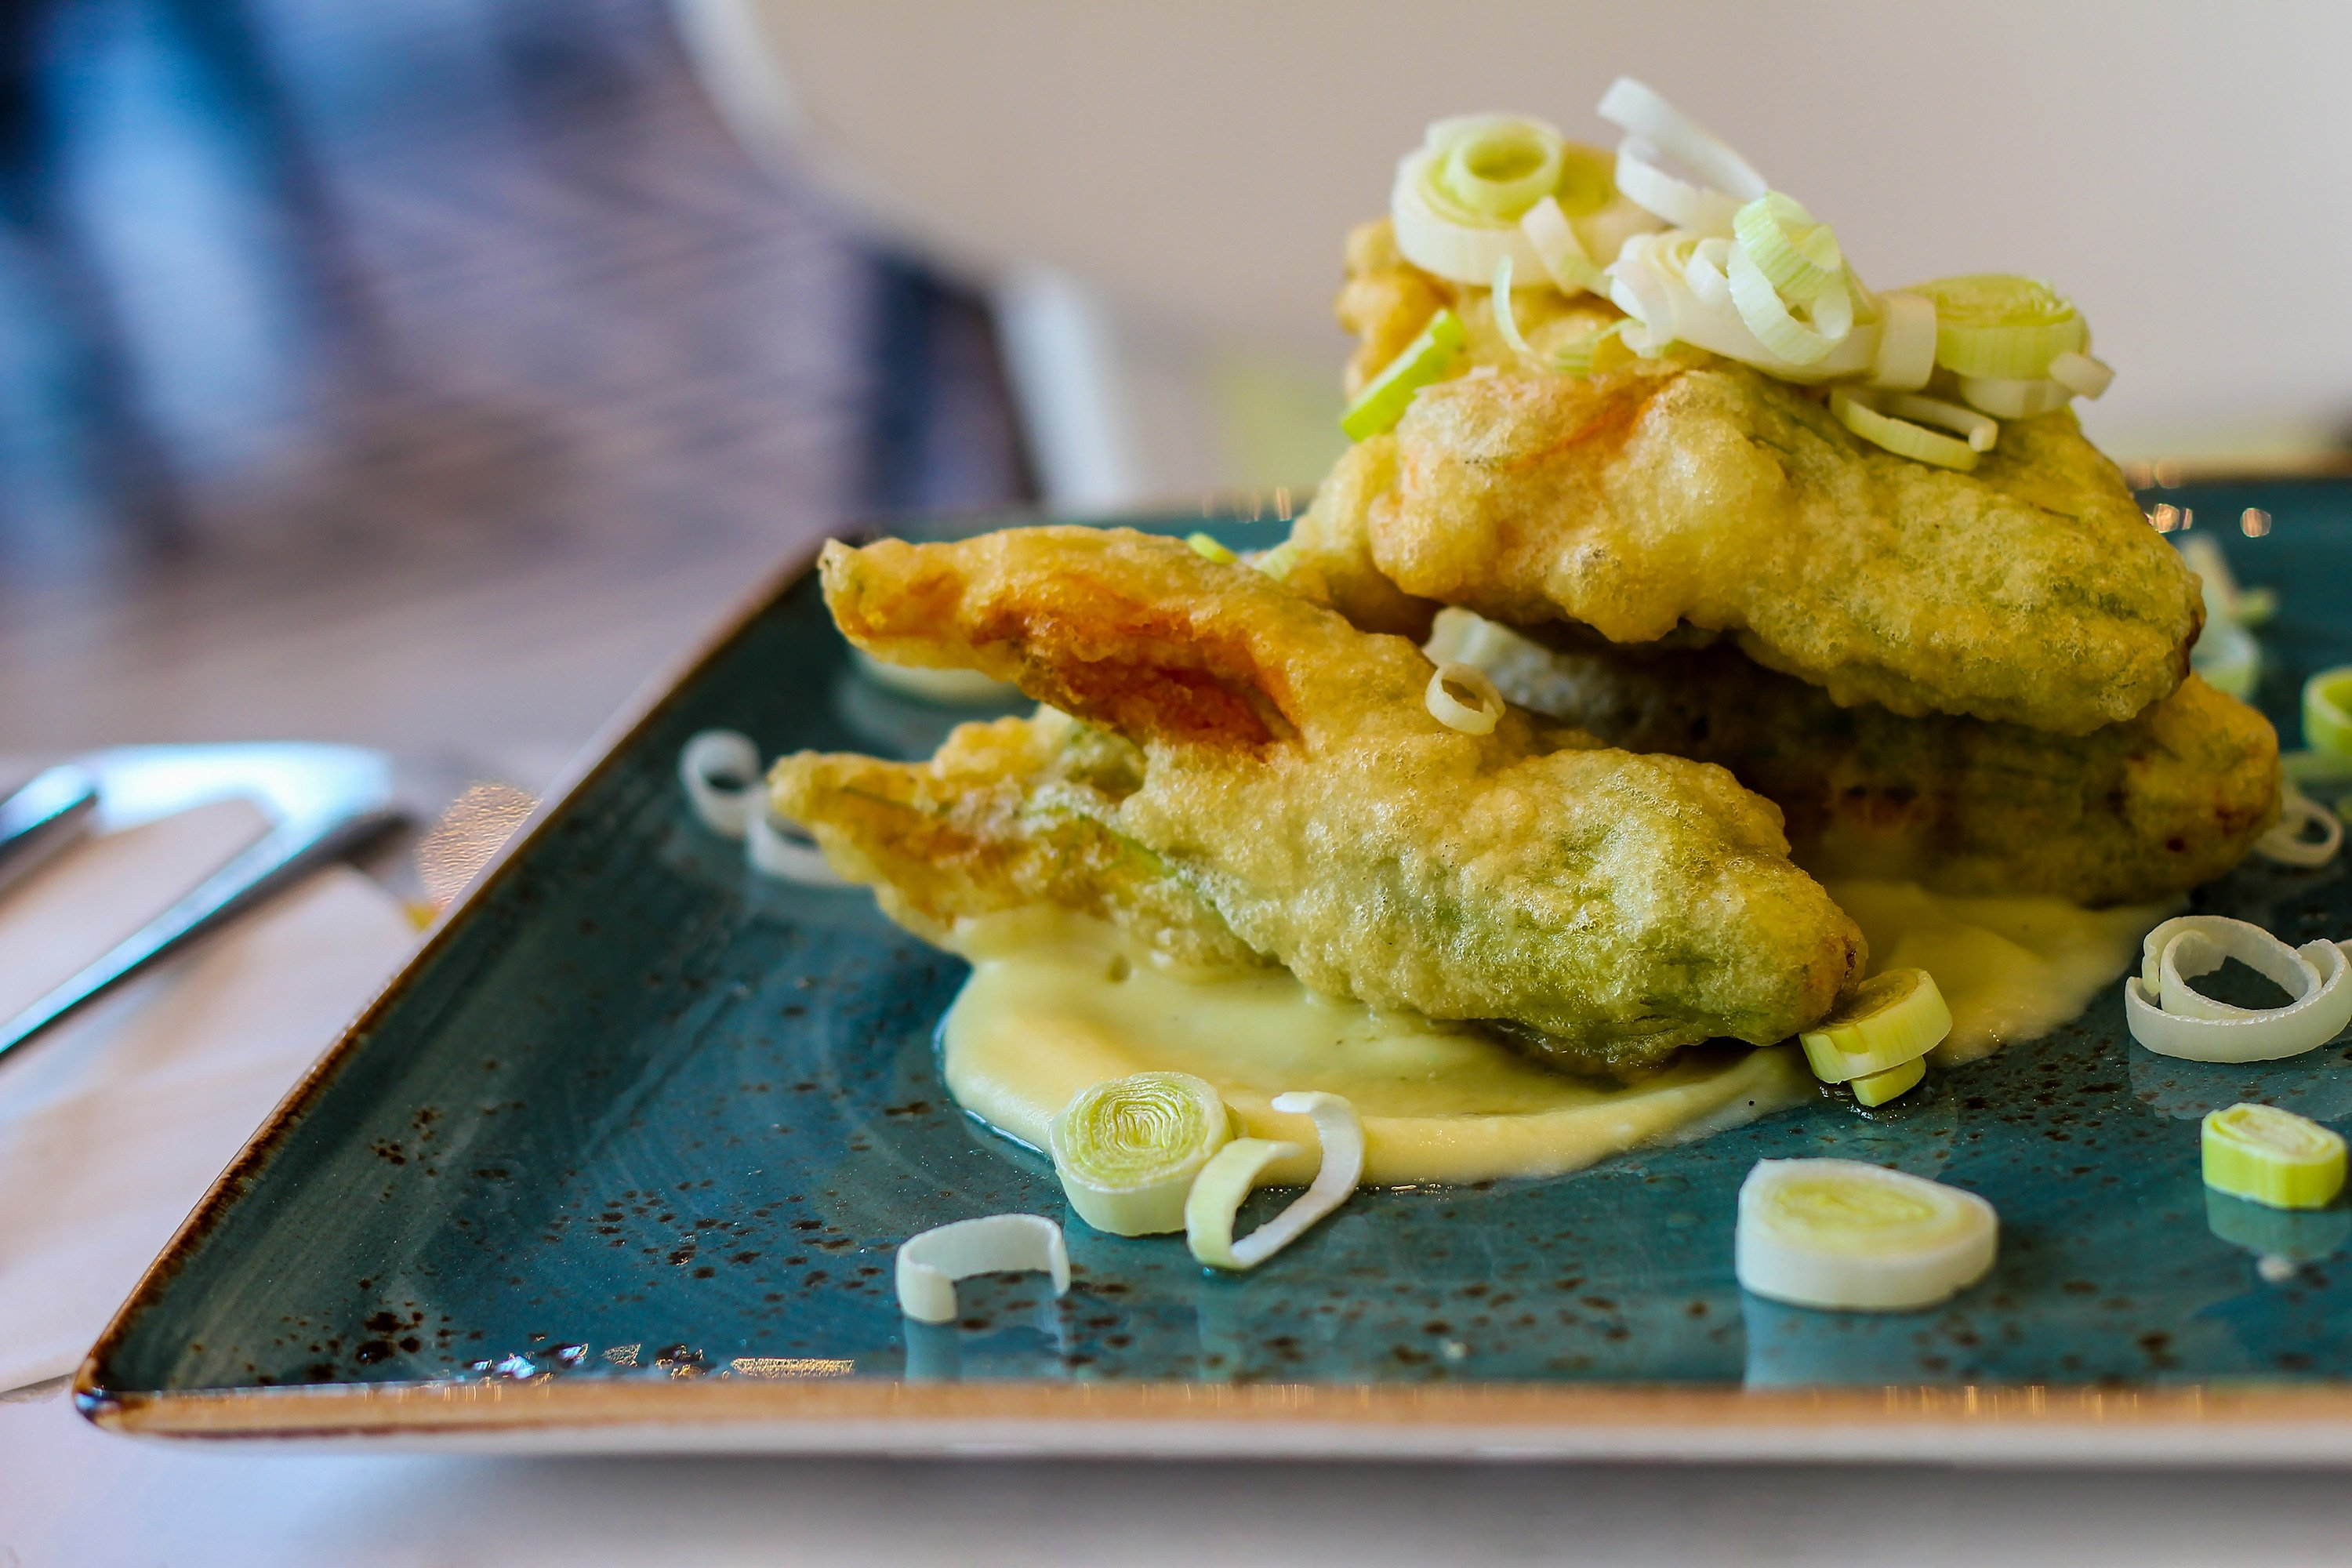 Anchovy leek fritters are an easy way to incorporate more vegetables into your diet. (Shutterstock Photo)